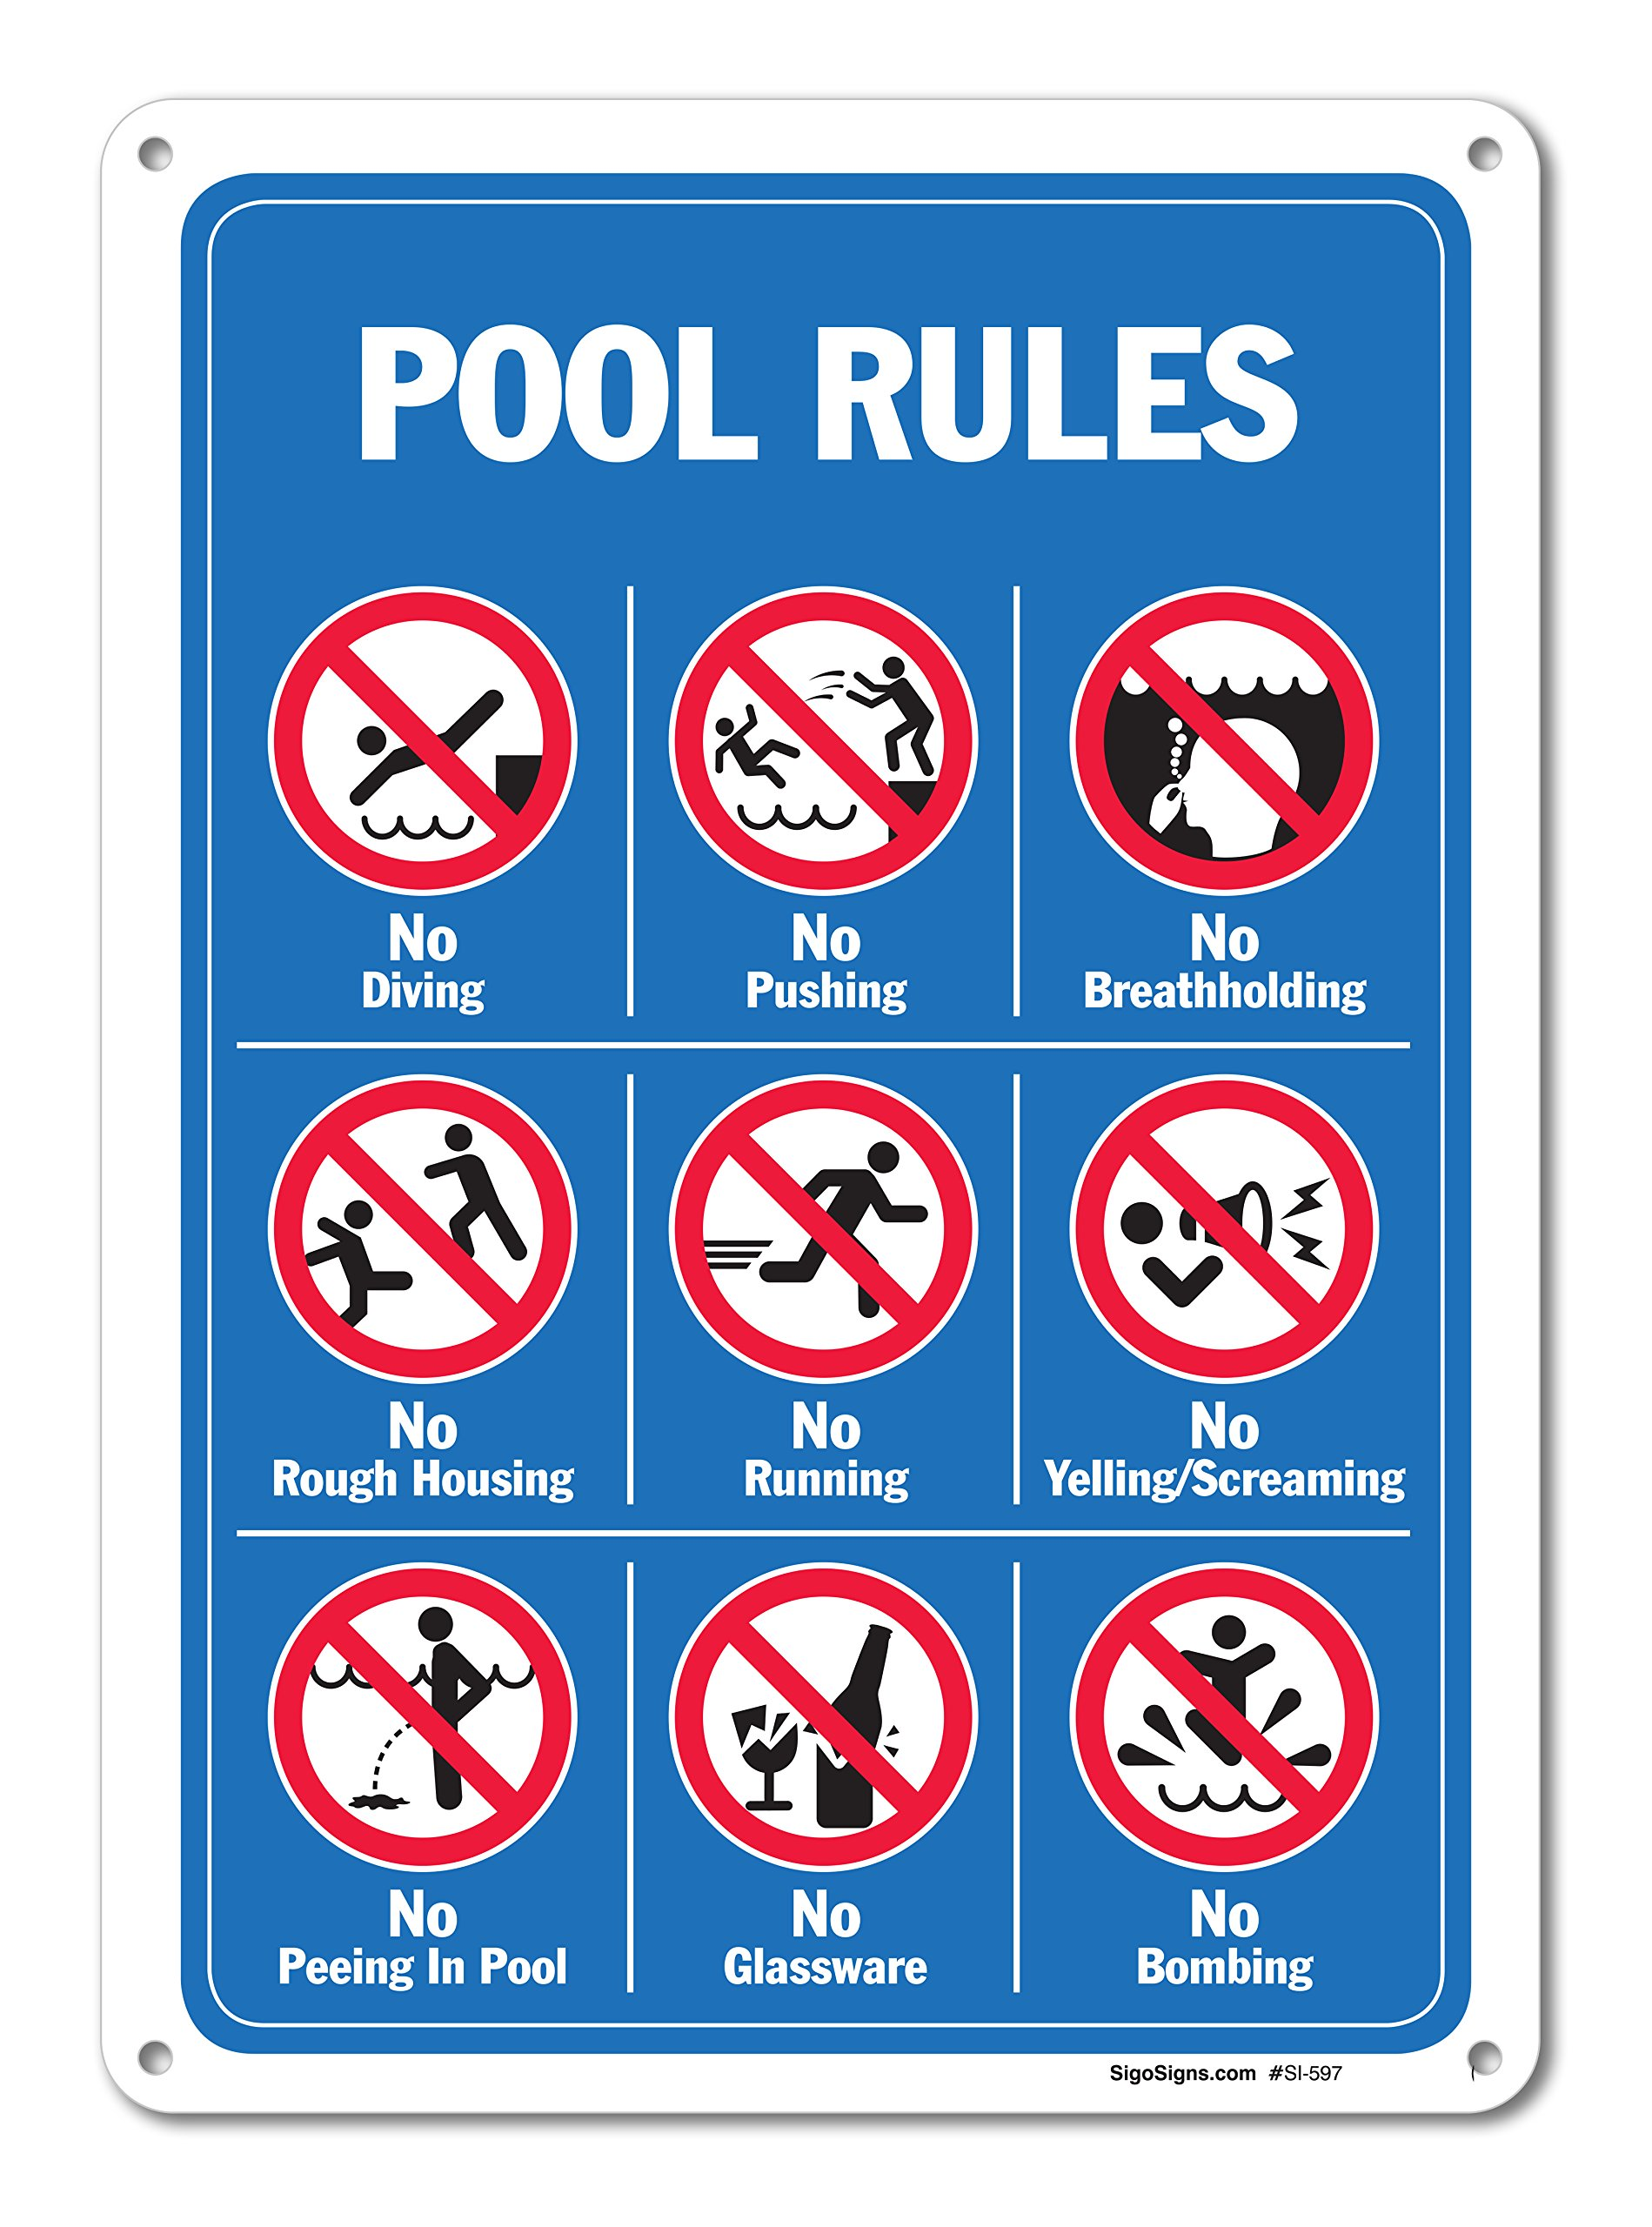 Pool Signs - Pool Rules Sign With Graphics- Large 10 X 14 Aluminum, For Indoor or Outdoor Use - By SIGO SIGNS by Sigo Signs